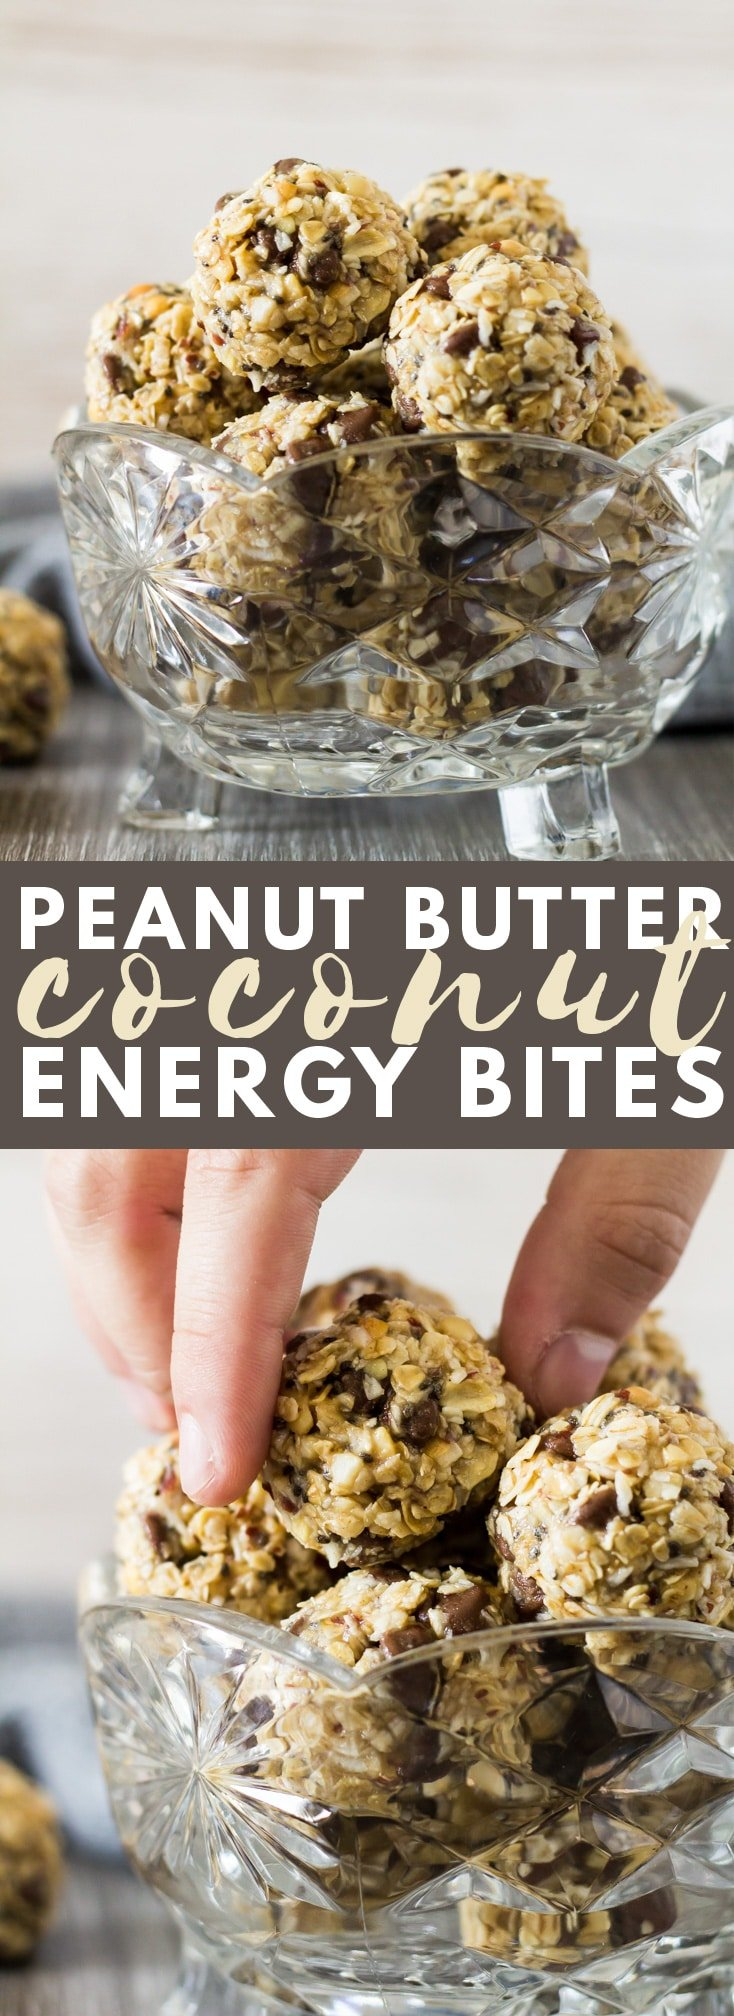 No-Bake Peanut Butter Coconut Energy Bites - Deliciously creamy and fudgy energy bites bursting with peanut butter flavour, and loaded with chocolate chips. A healthy protein-packed breakfast or snack! #peanutbutter #coconut #energybites #healthy #healthysnacks #healthyrecipes